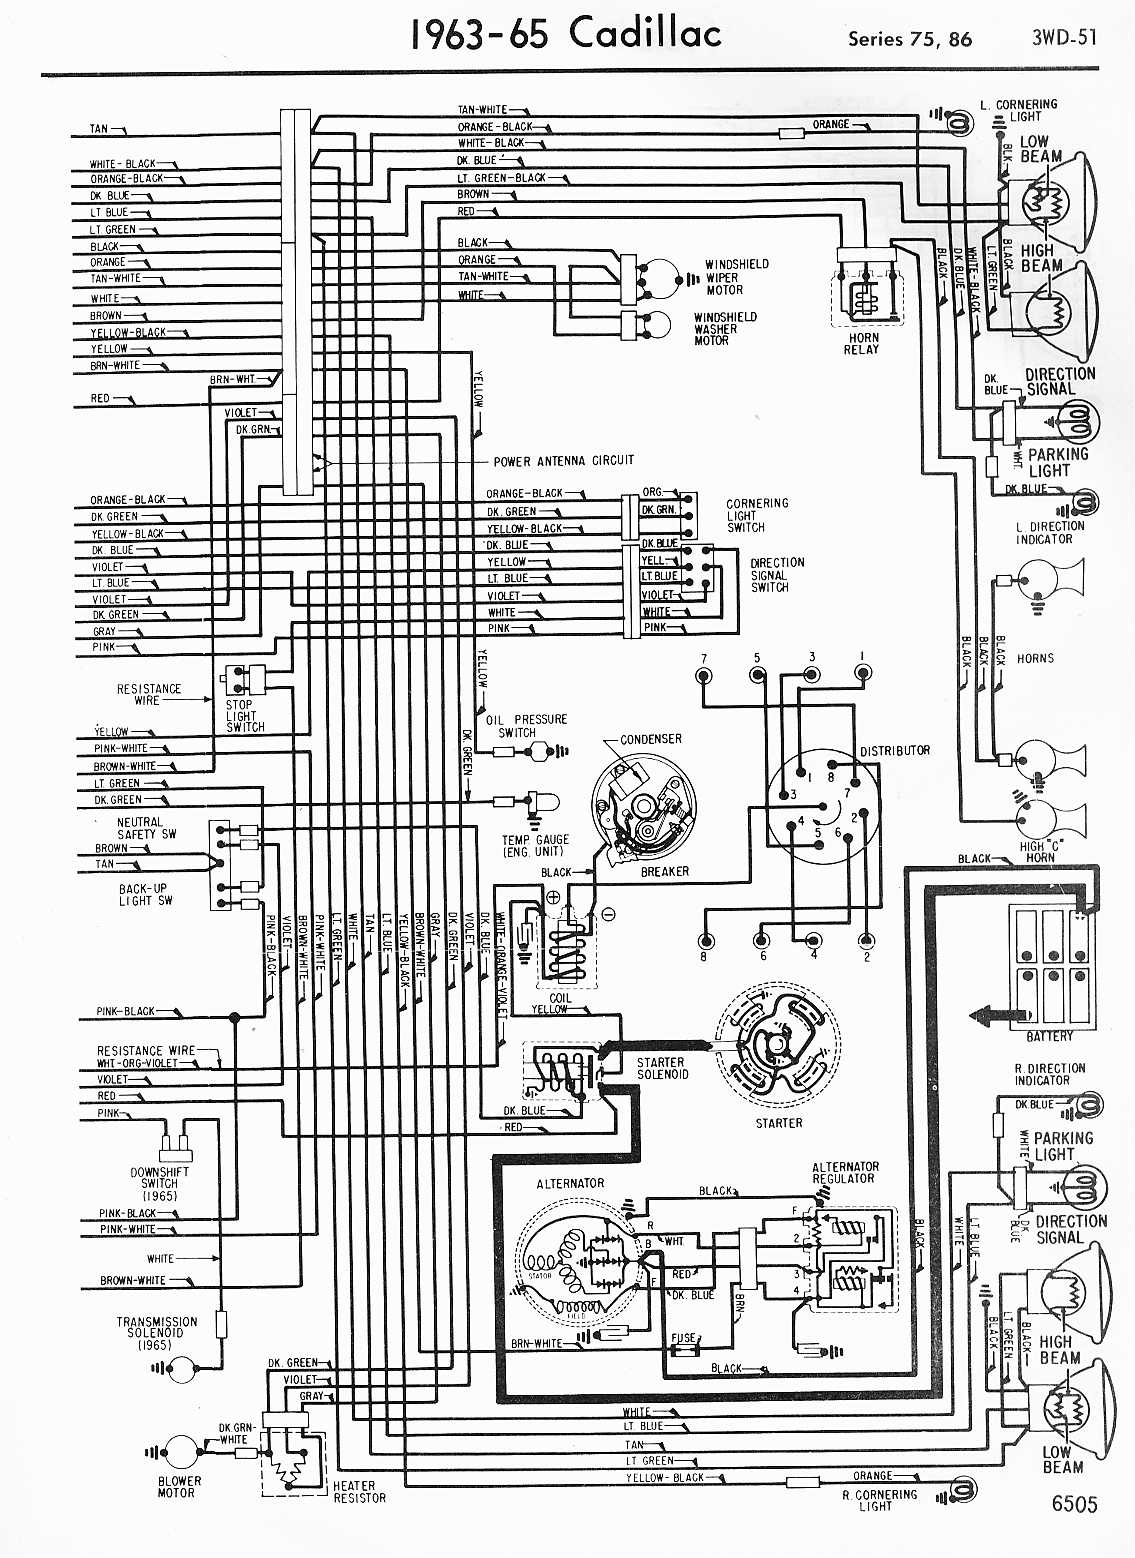 Cadillac Wiring Diagrams 1957 1965 Chevy 4x4 Wiring Diagram 1956 Cadillac Wiring  Diagram